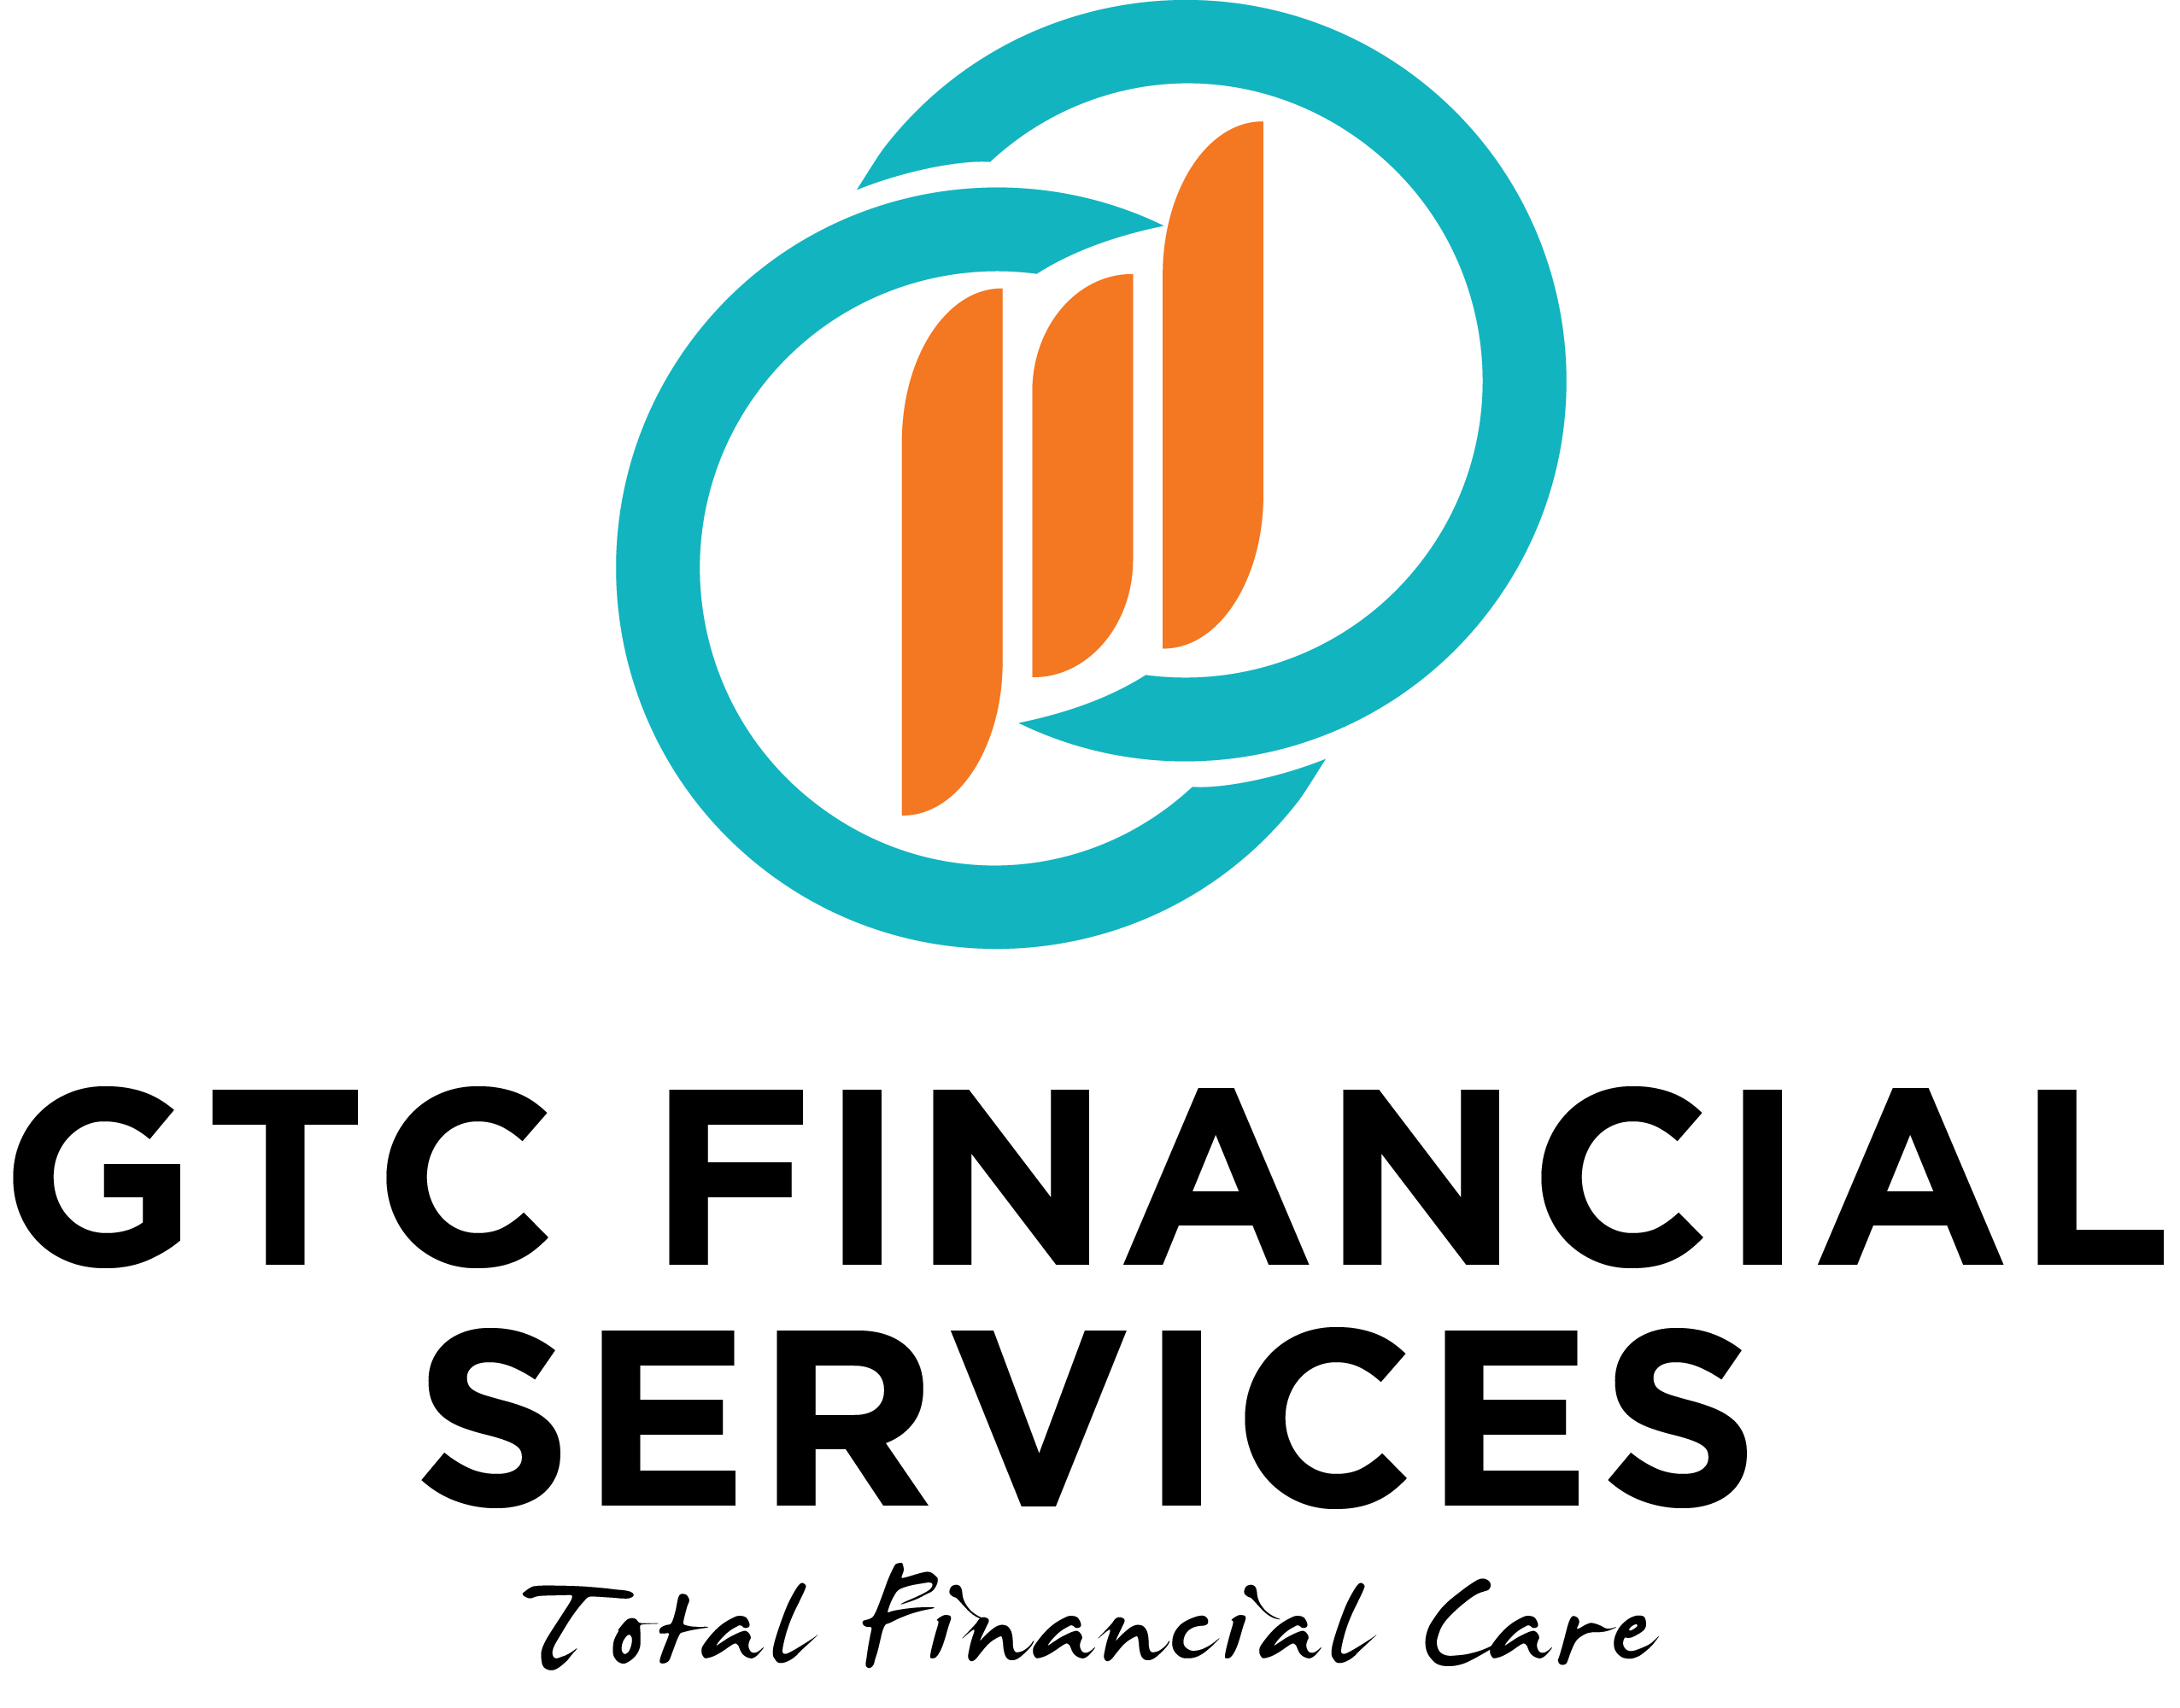 GTC Financial Services